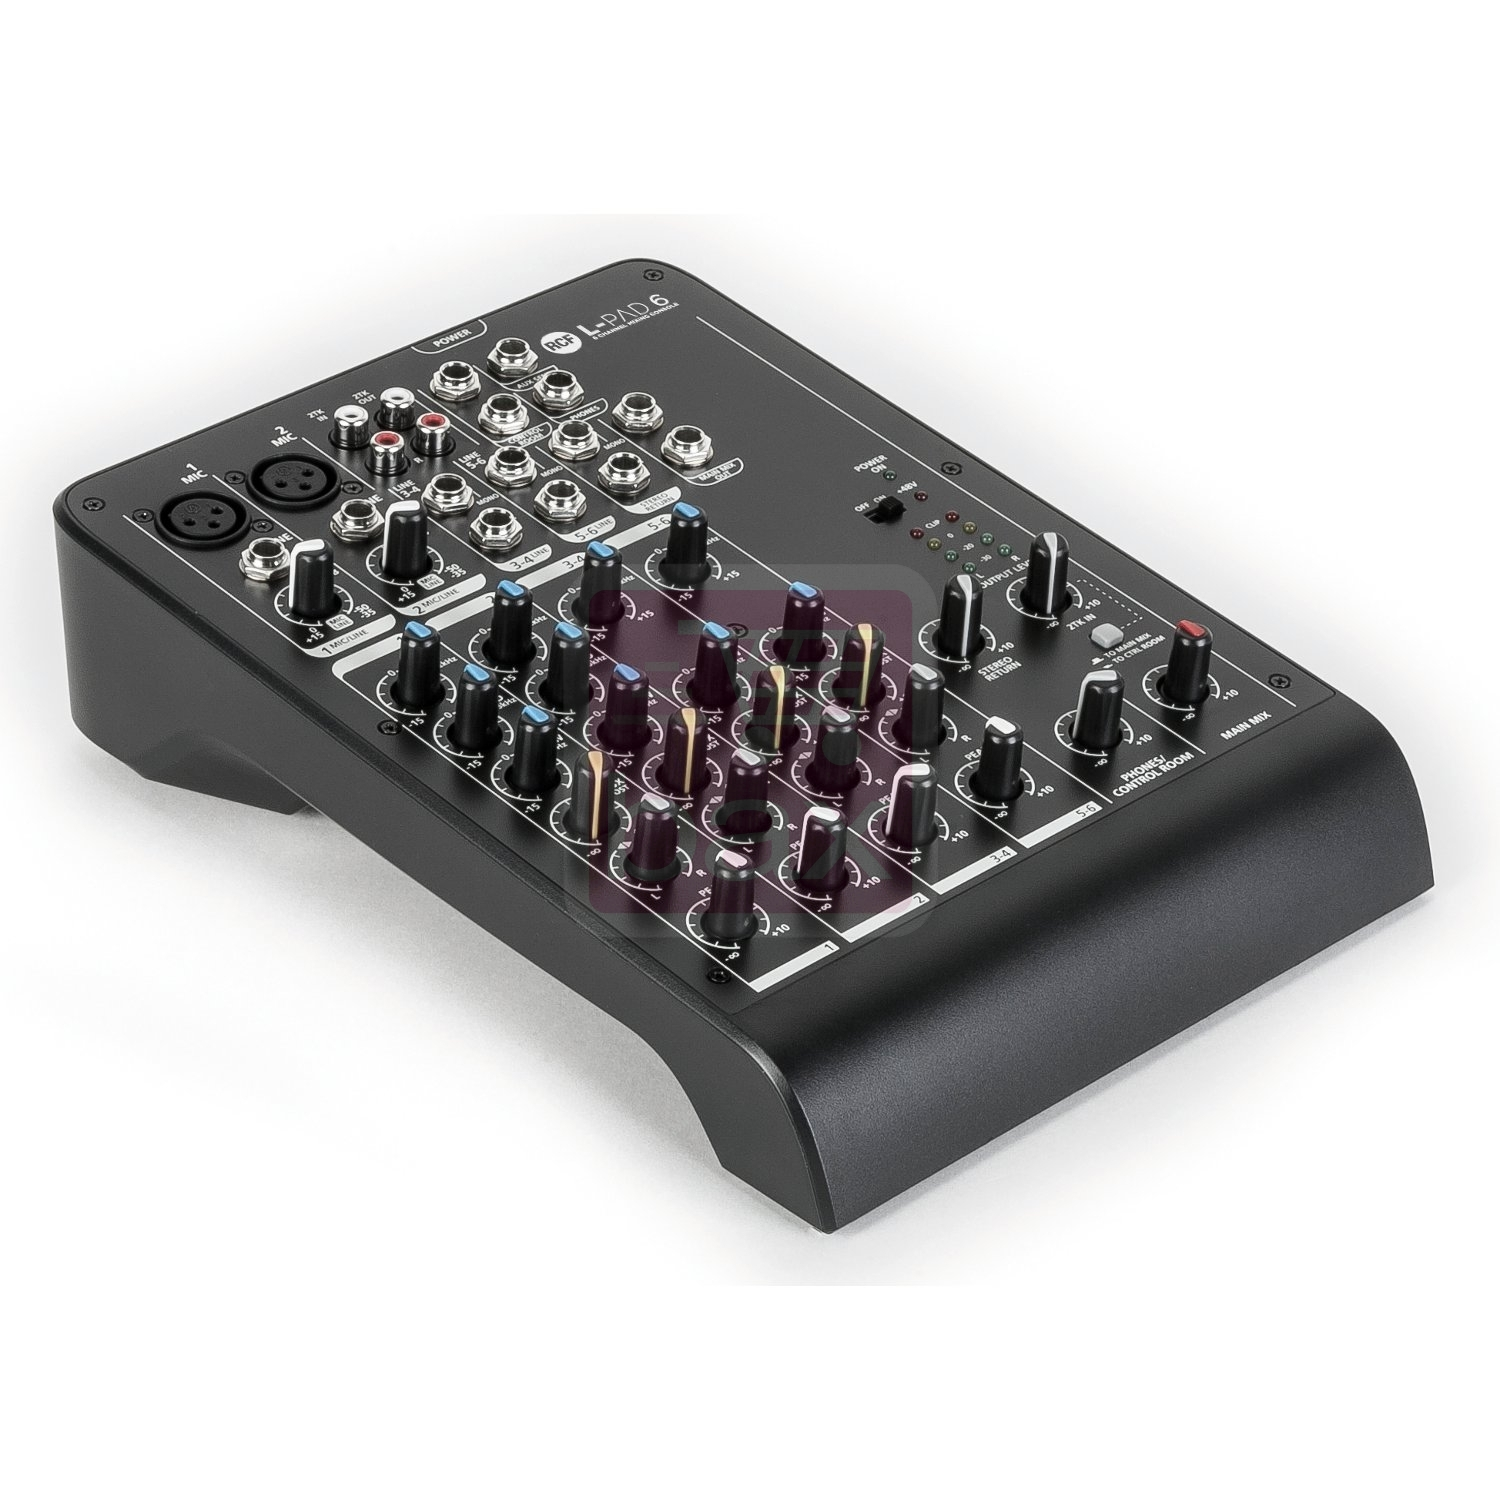 Thomann musique for Table de mixage xpress 6 keywood